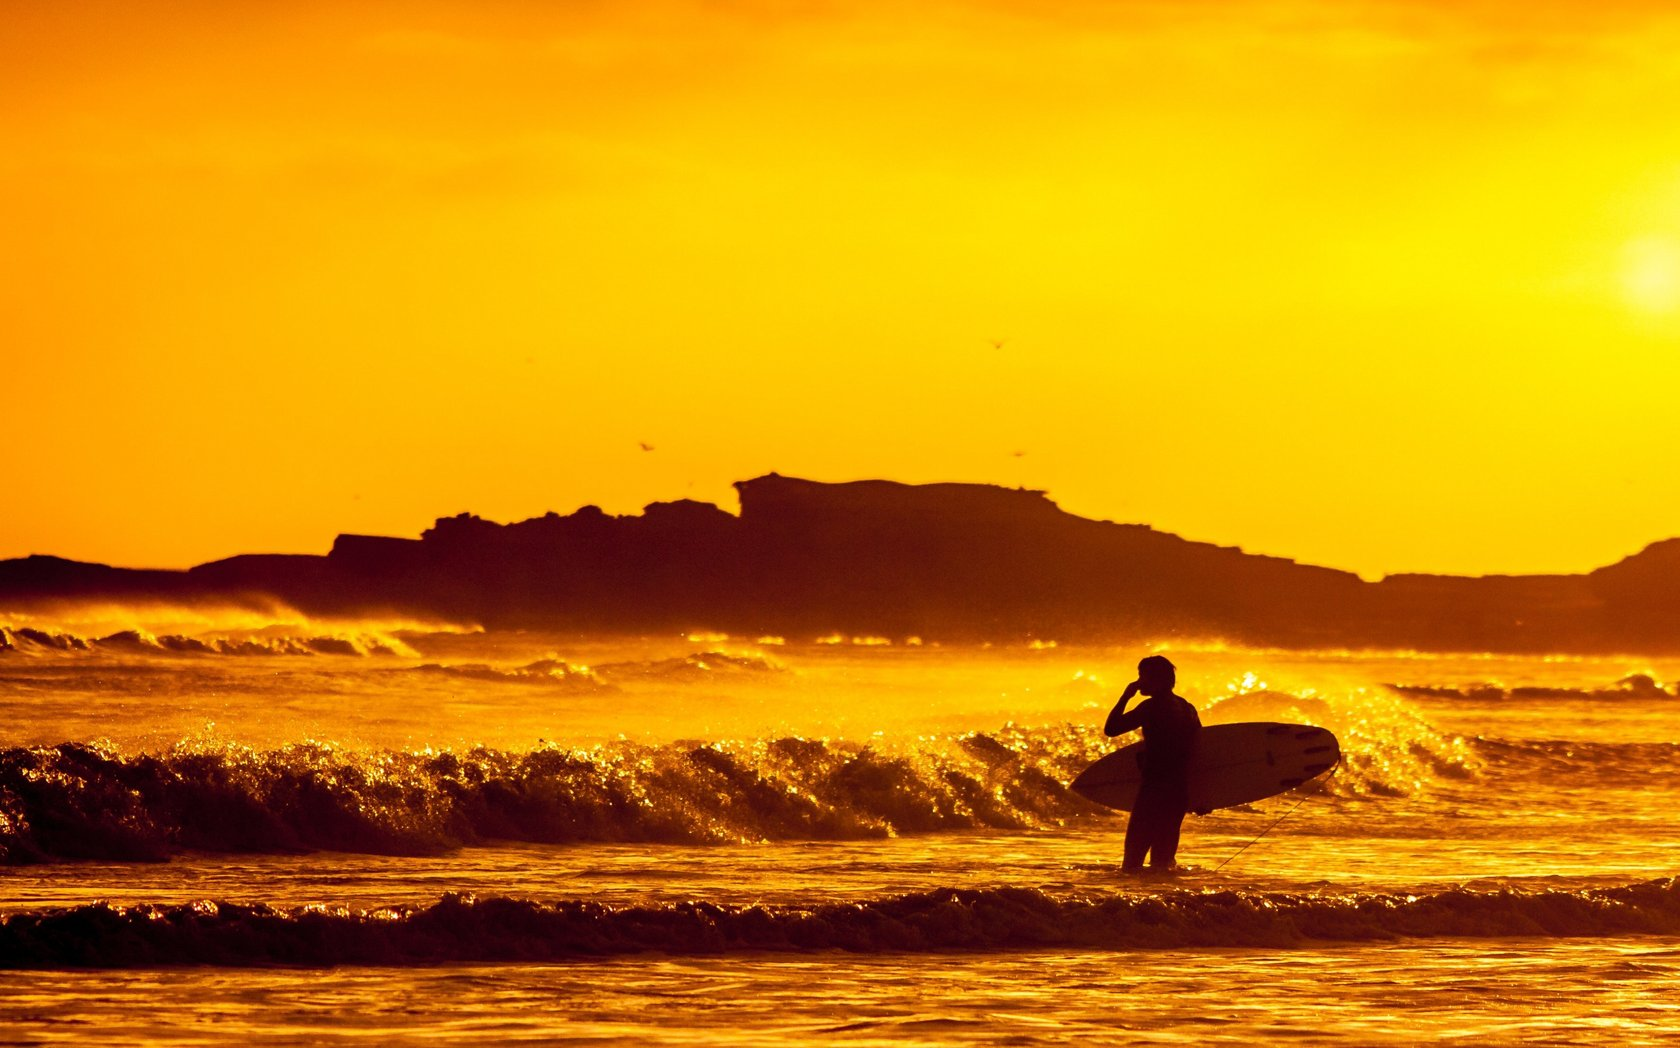 Silhouette Photography: The Art of Capturing Cool Silhouettes Image9